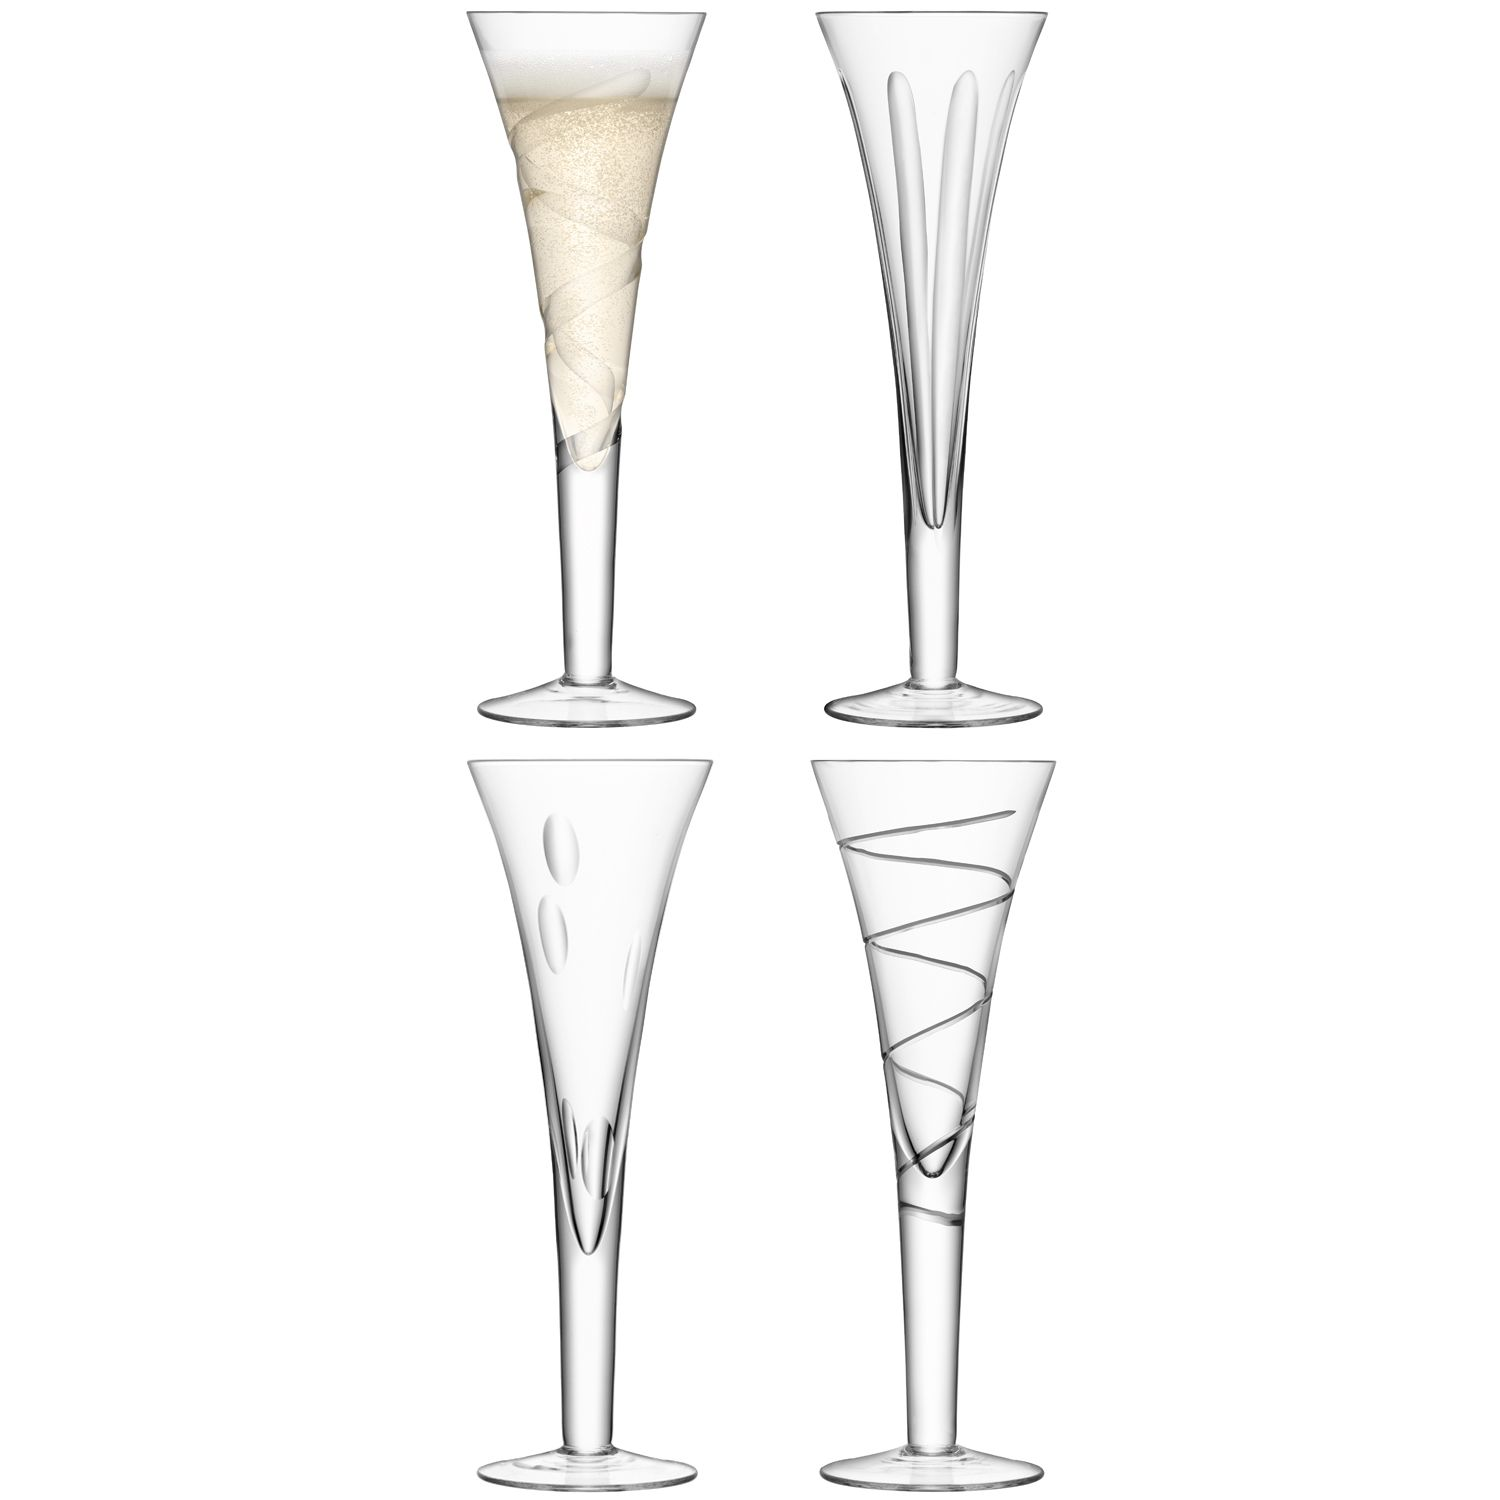 Charleston champagne flute assorted cuts set of 4